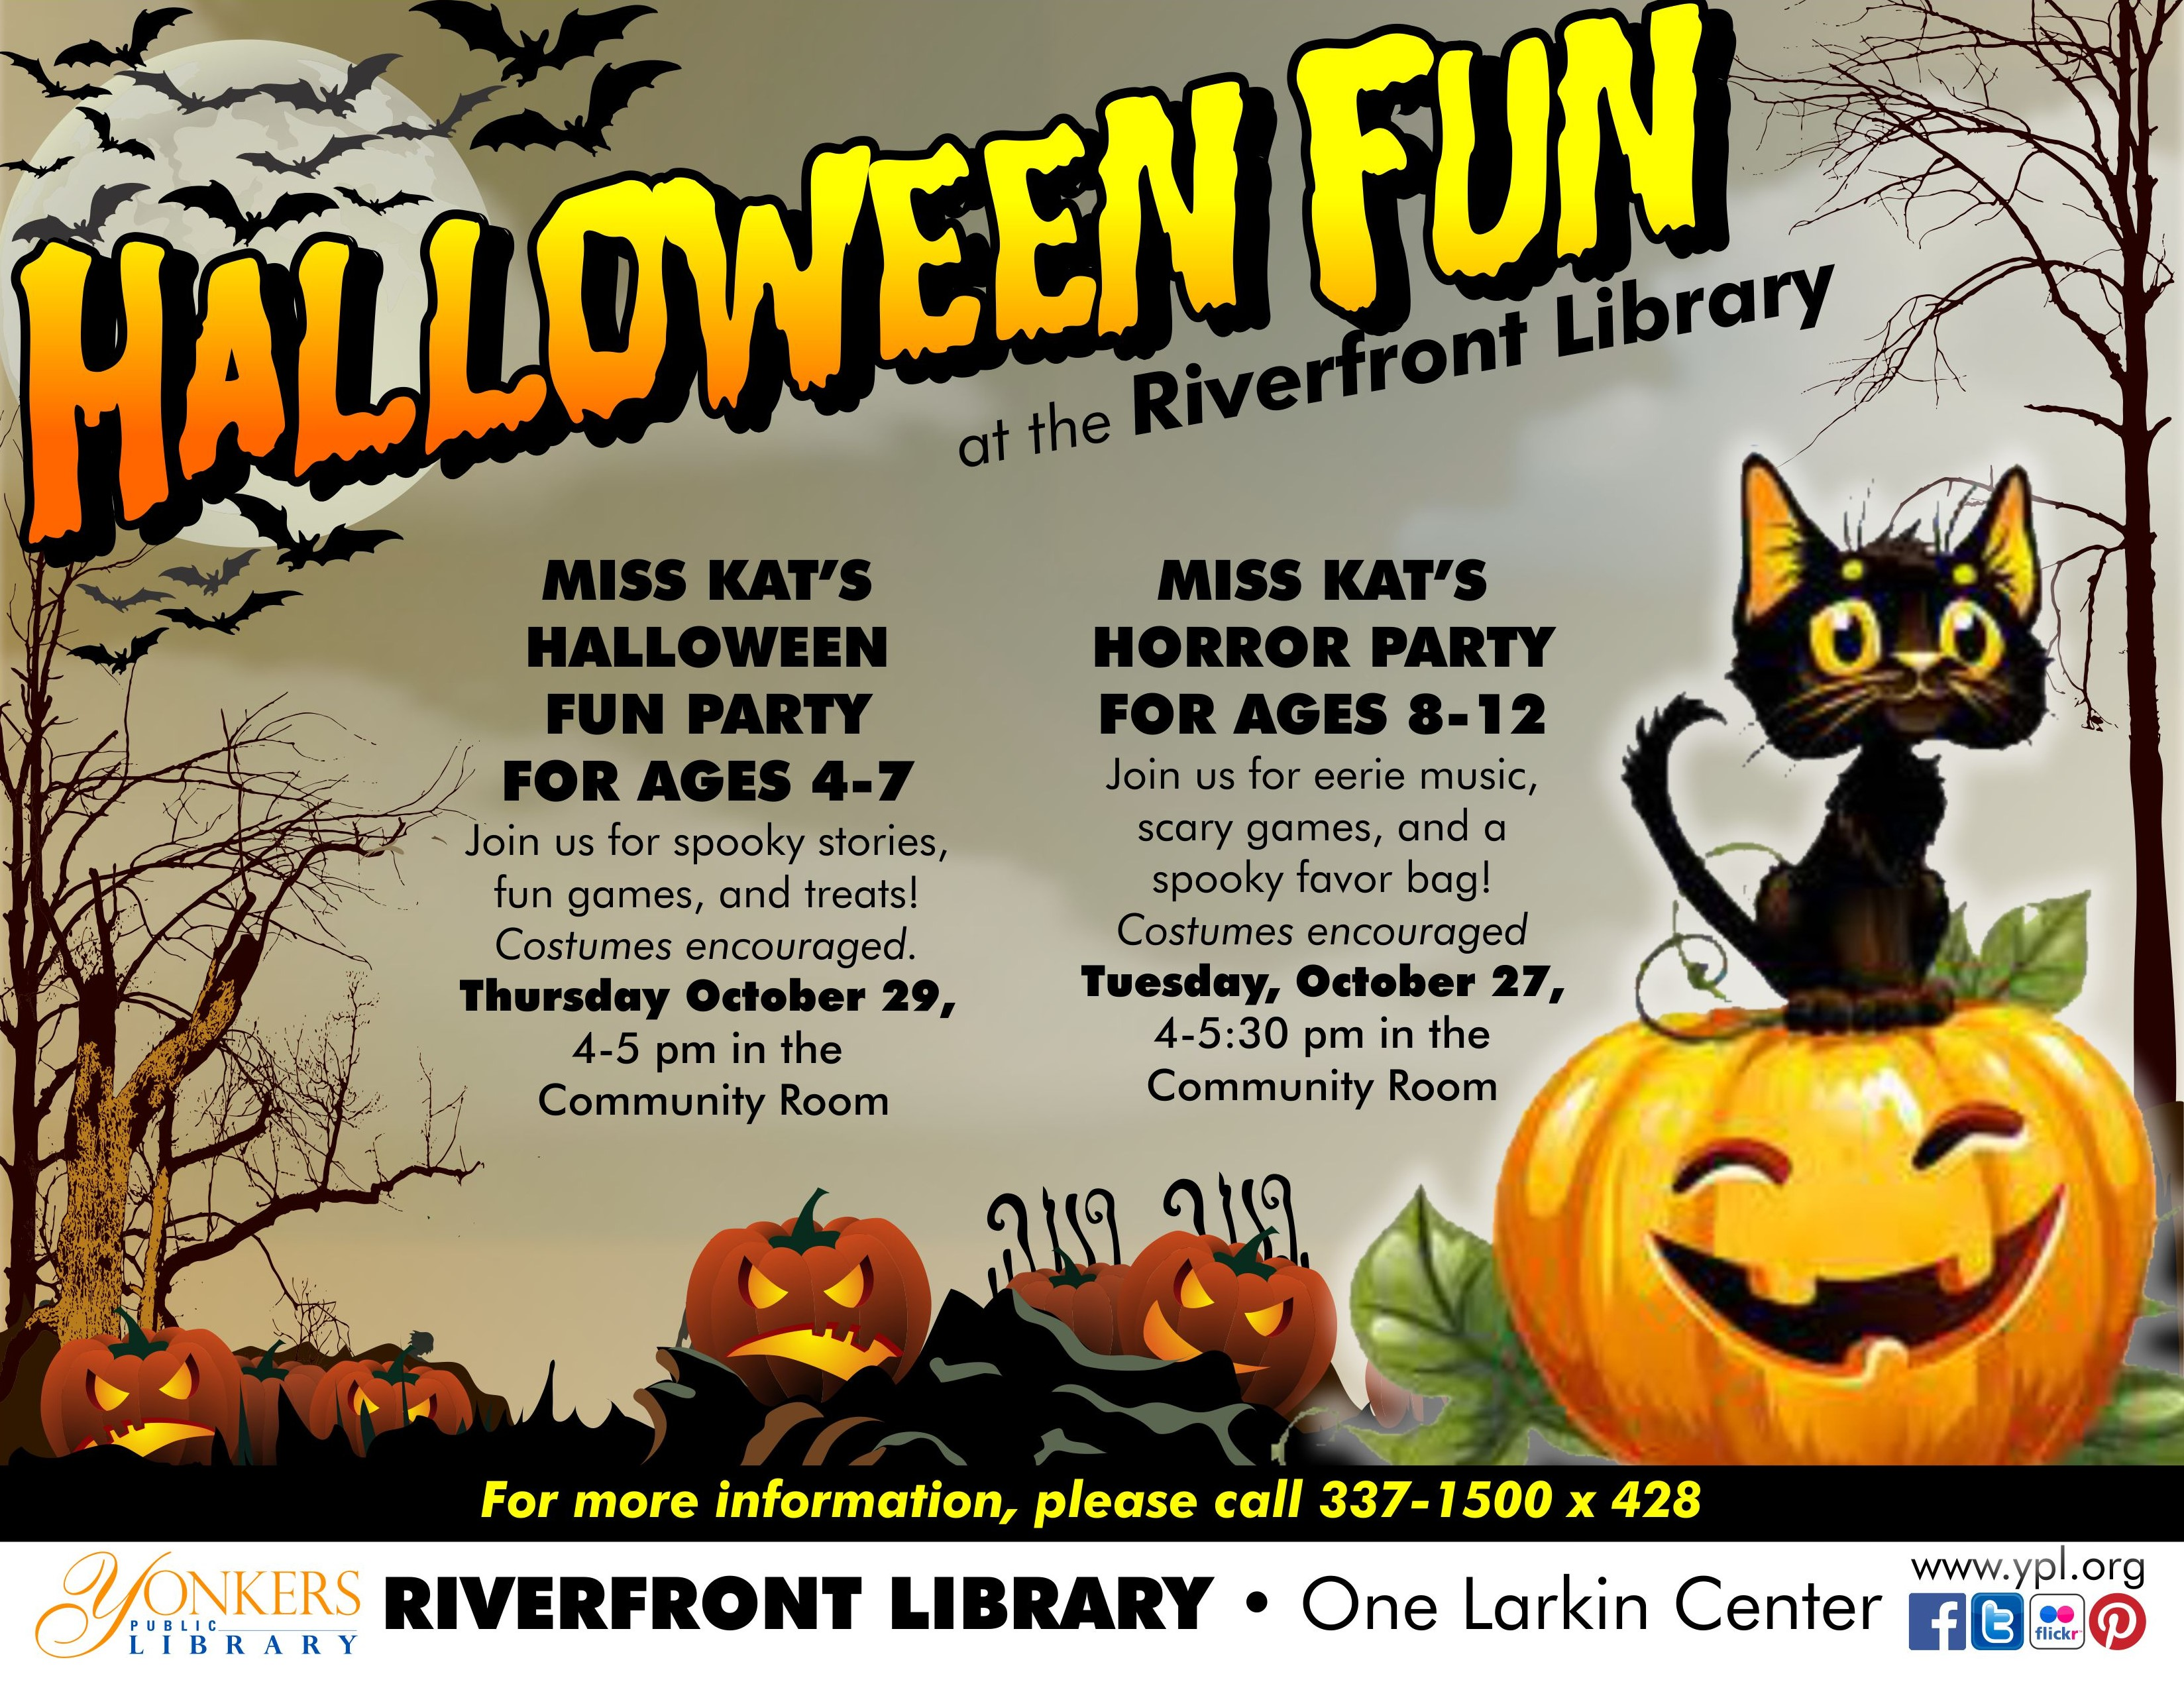 Halloween Fun at the Riverfront Library